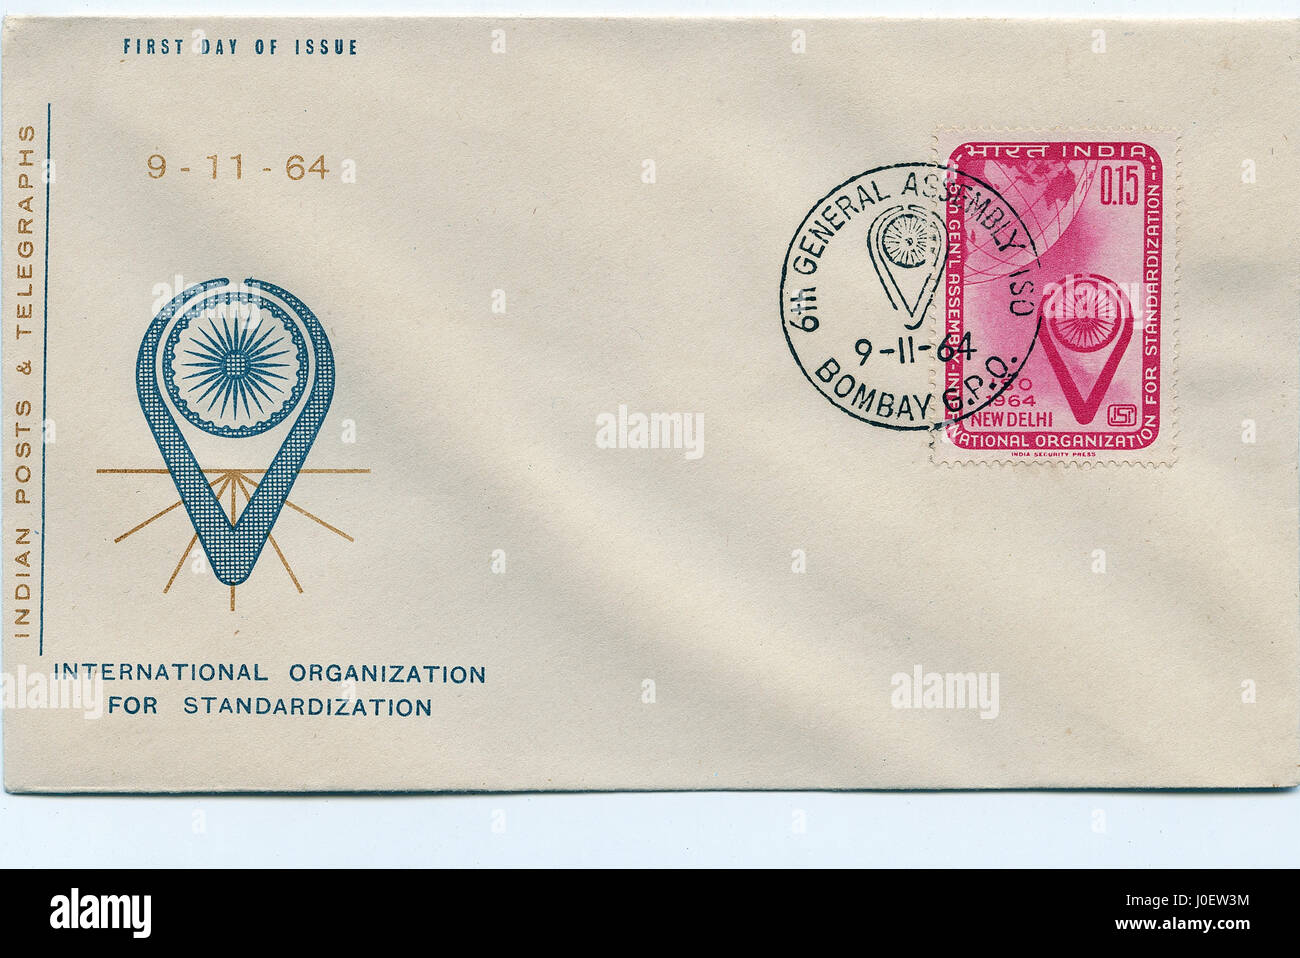 First day cover of international organization for standardization, india, asia - Stock Image